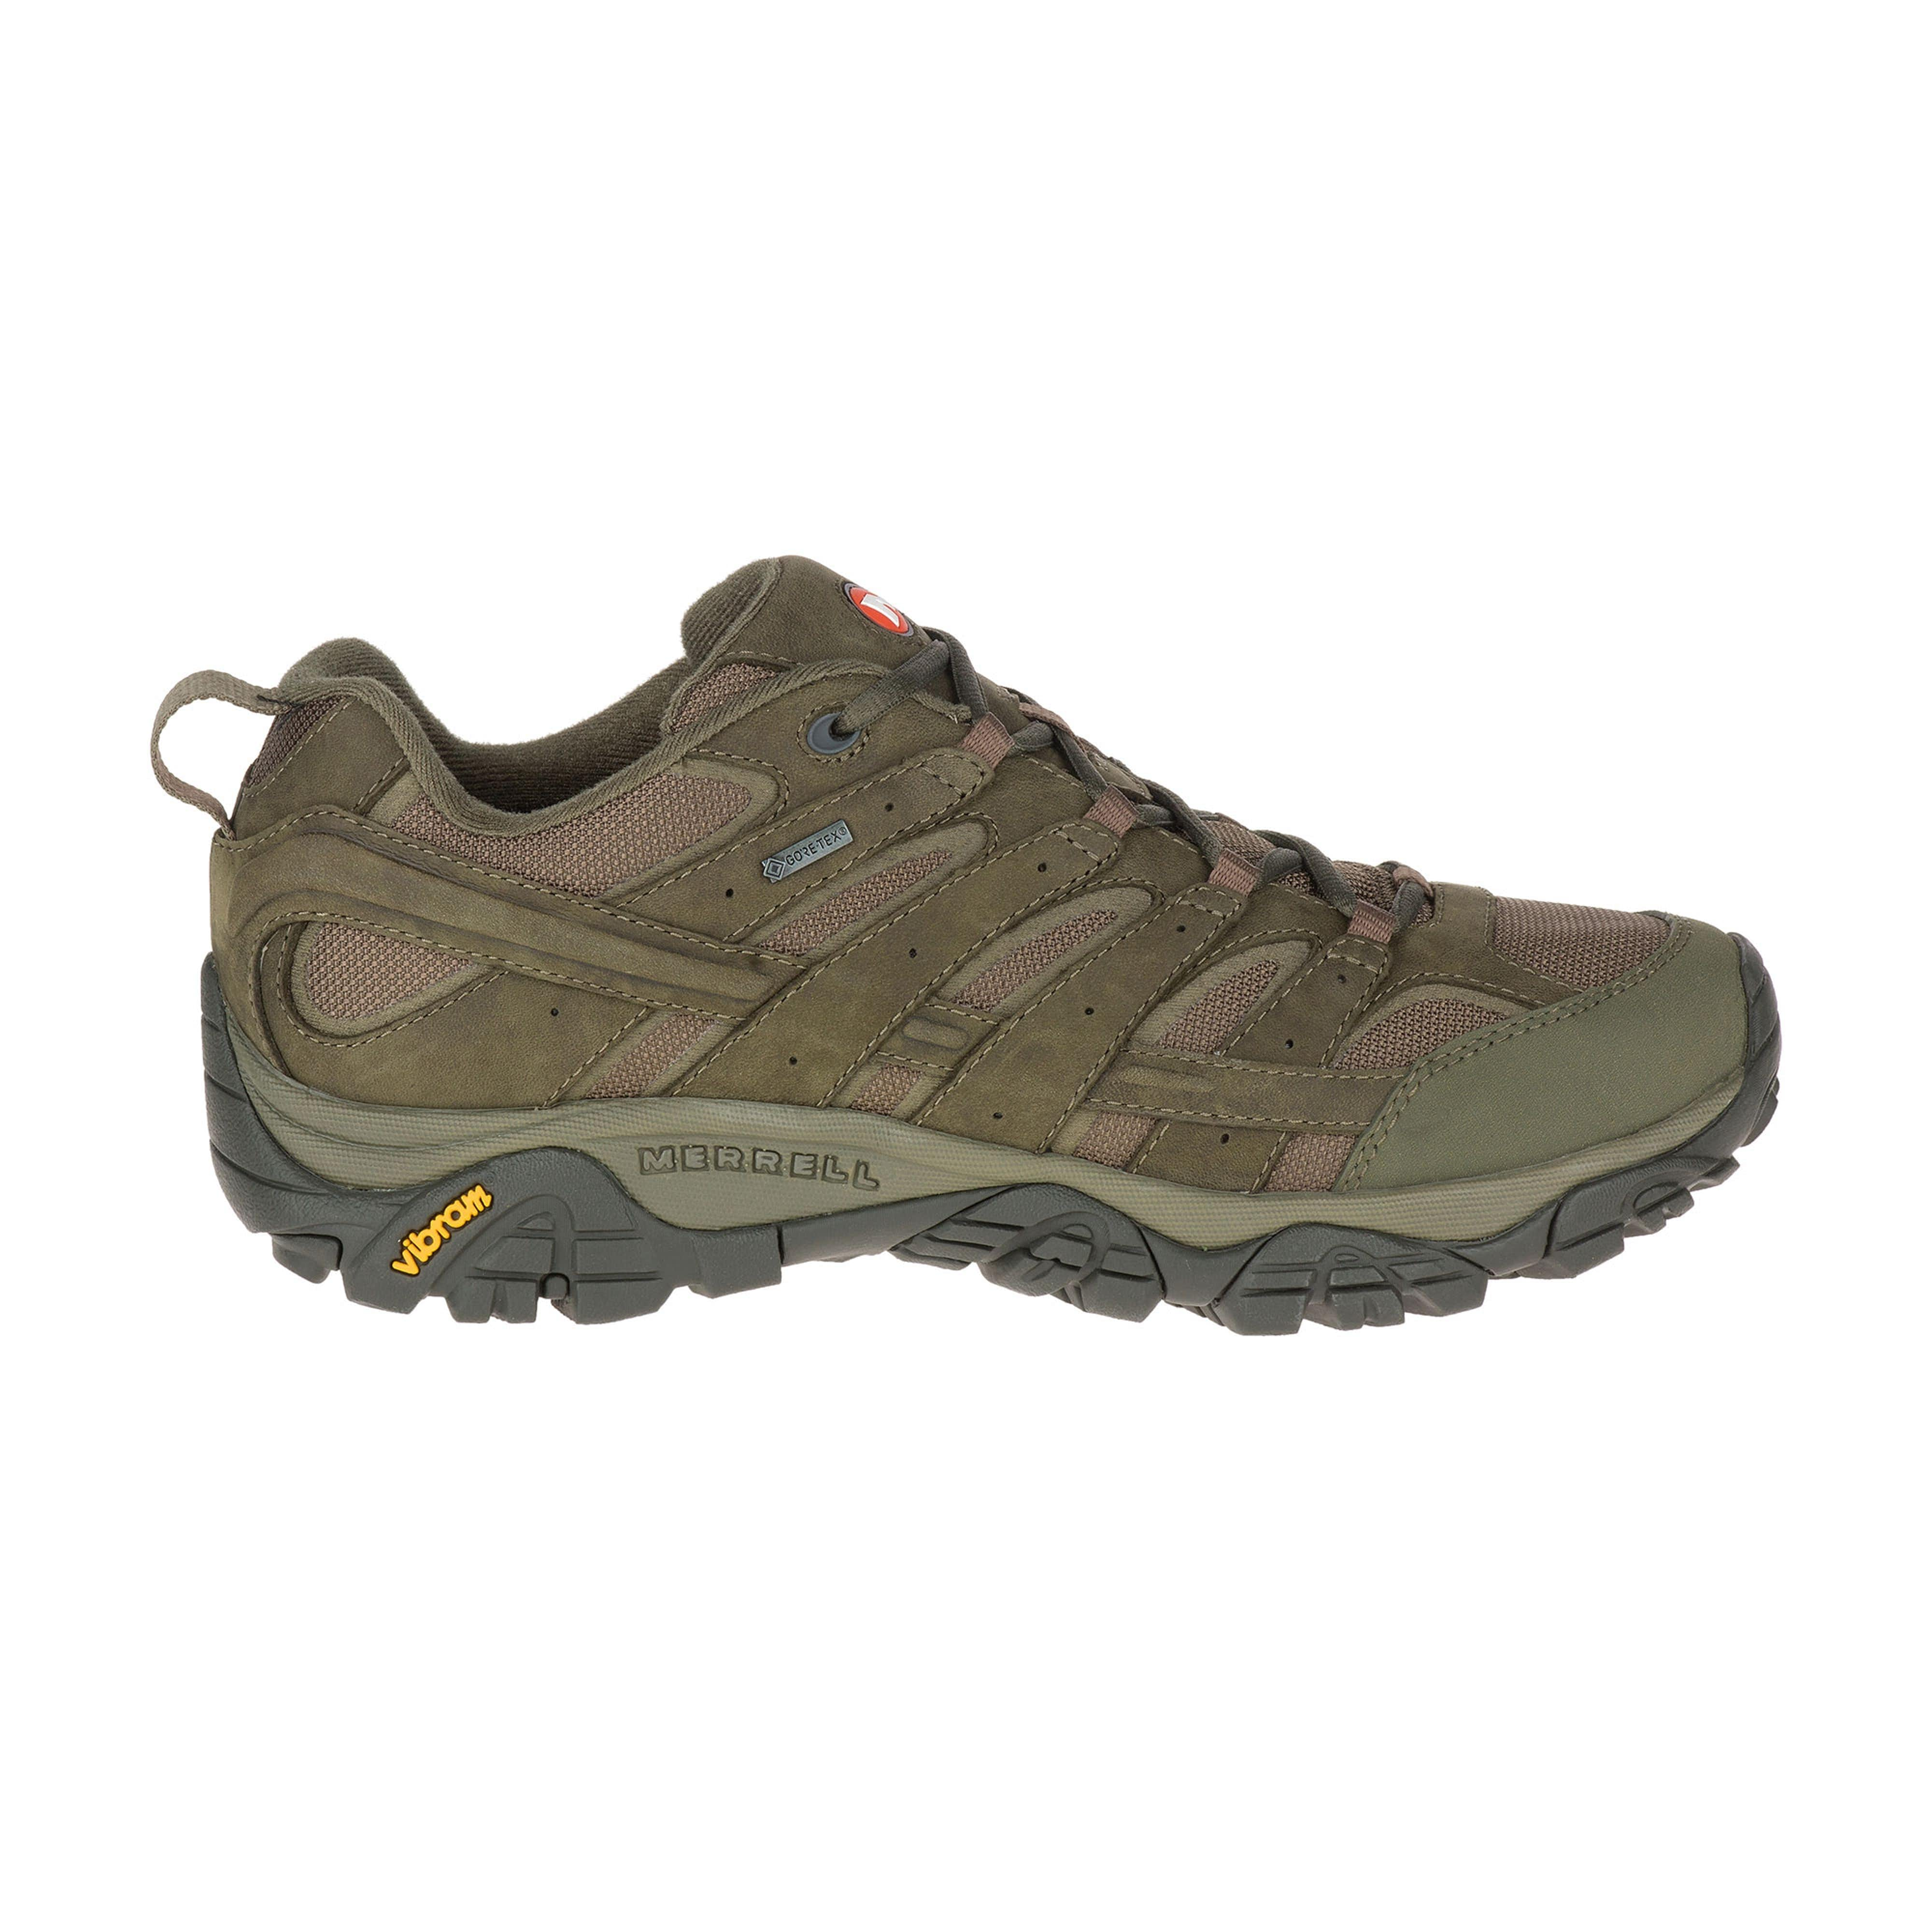 60a7bdfe1ae75 Hiking Shoes for Men | Trail Running & Trekking Shoes | NZ